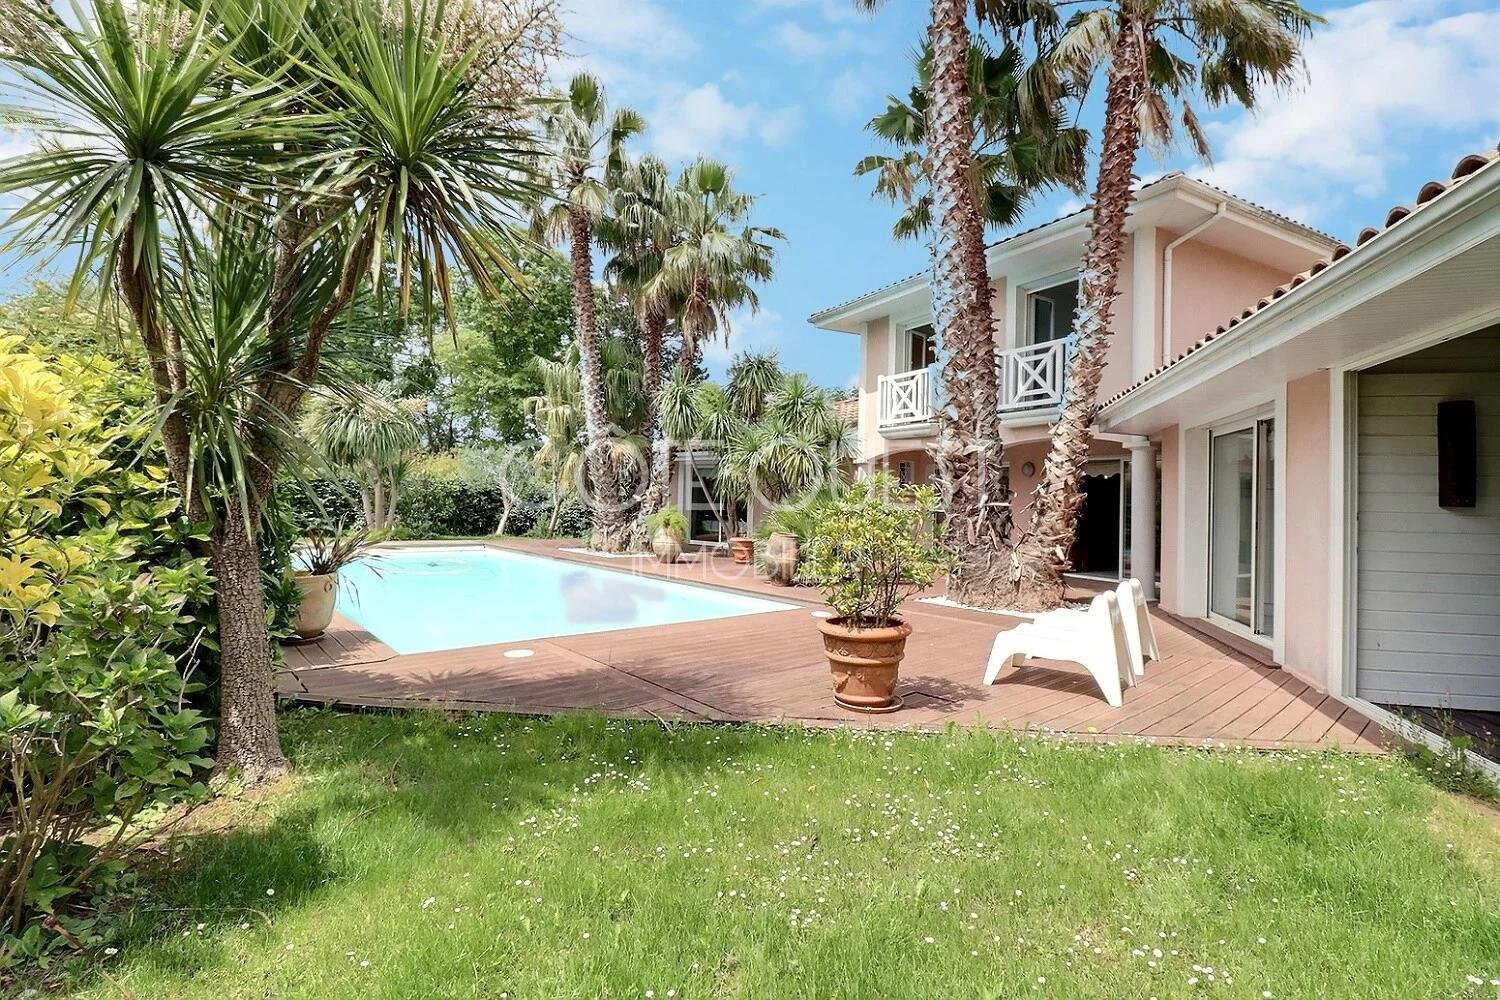 BIARRITZ - A RECENT PROPERTY IN A PRIVILEGED ENVIRONMENT